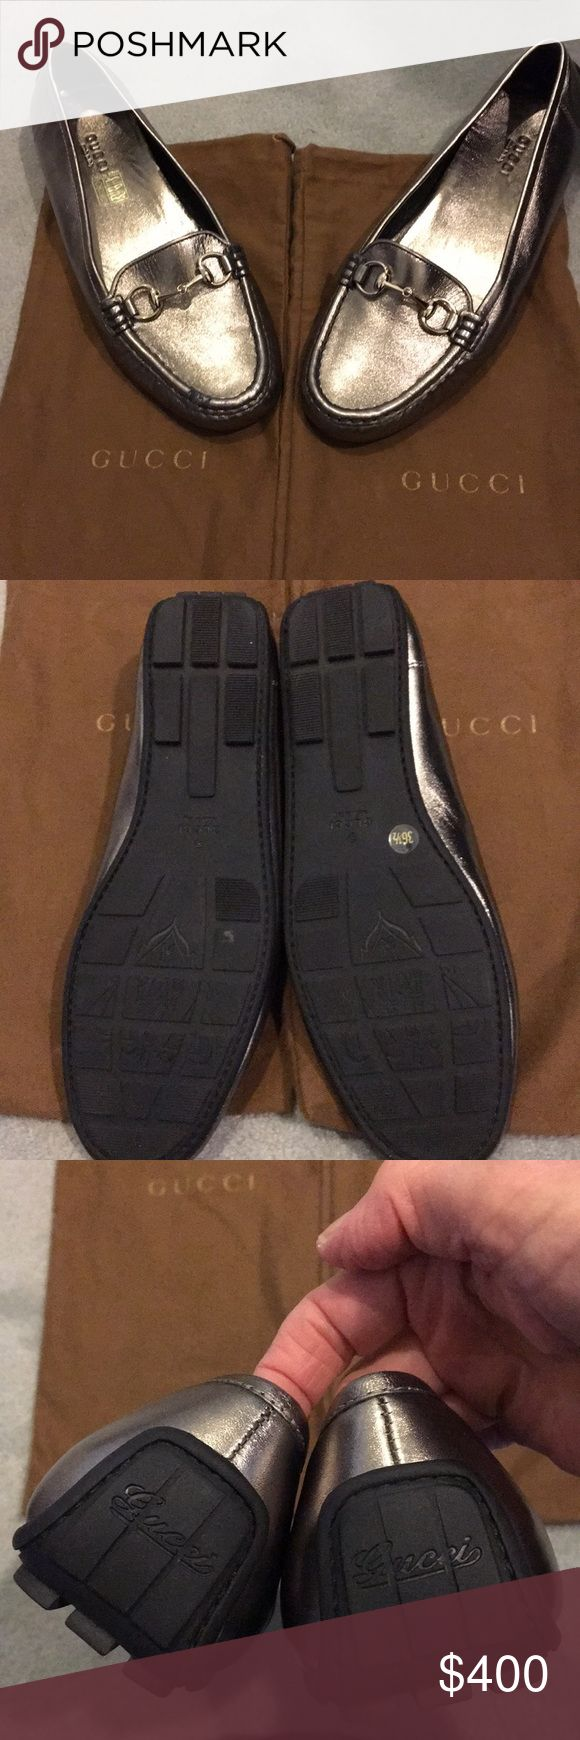 Gucci silver driving shoes! Gorgeous Gucci driving shoes with cute tread design! Worn 2-3 times! Has a tiny flaw on the right shoe as shown in picture. Not real noticeable when wearing. Price reflects this! Gucci Shoes Flats & Loafers